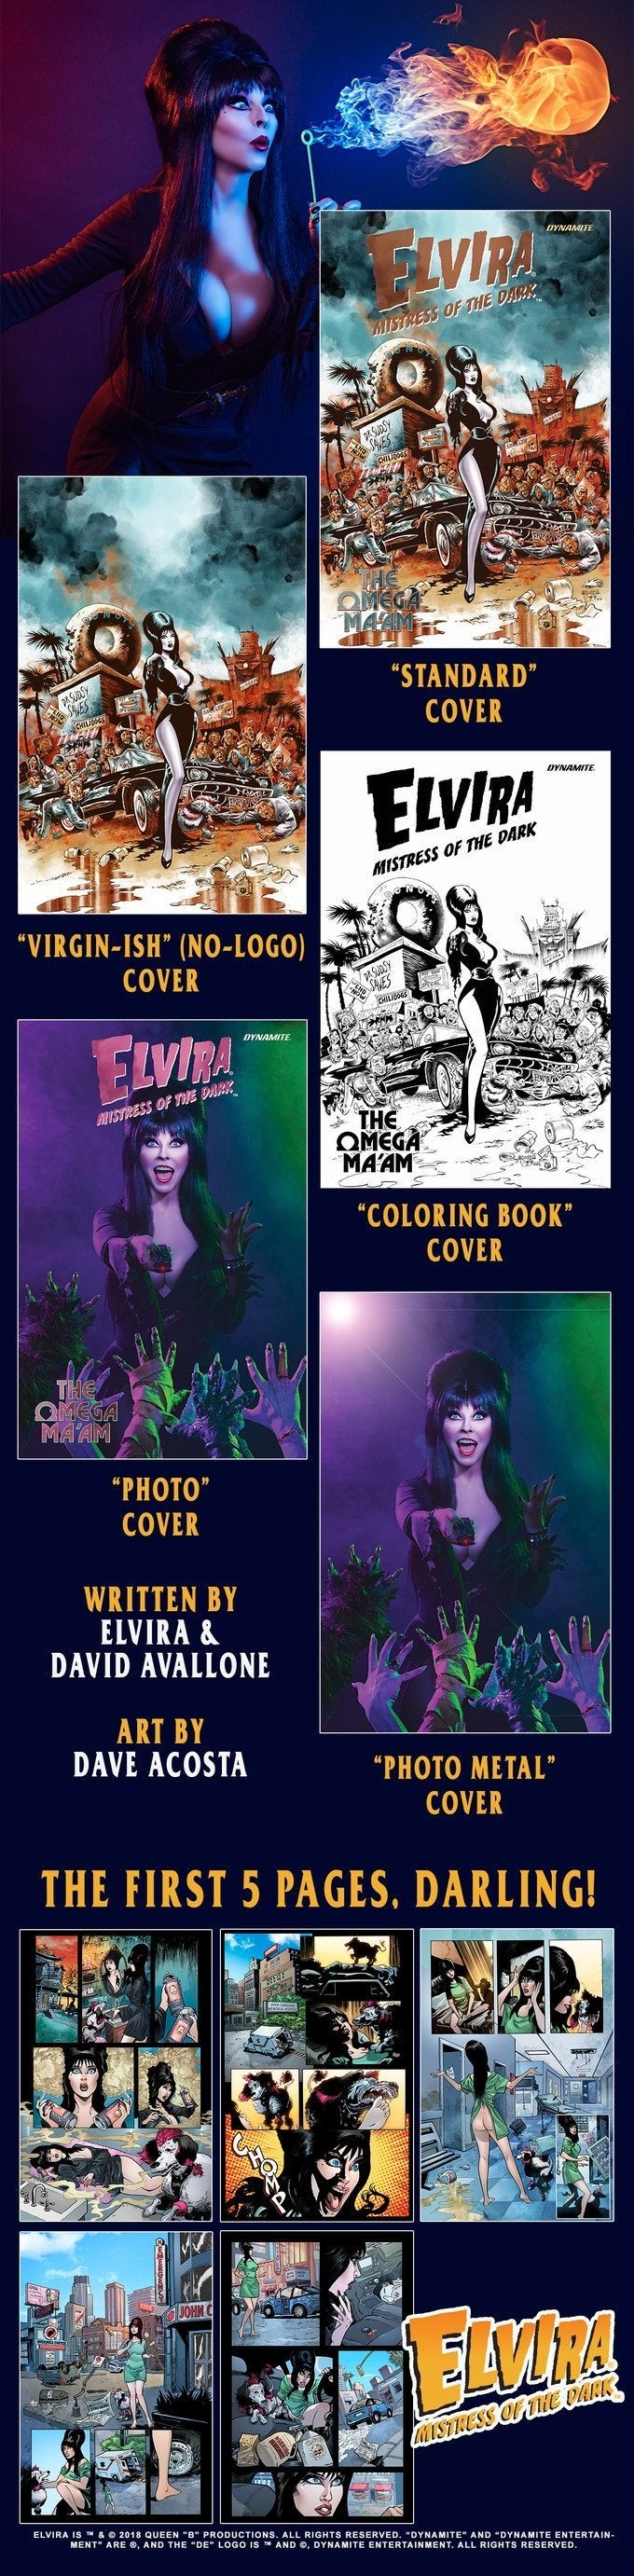 elvira omega ma'am comic book kickstarter